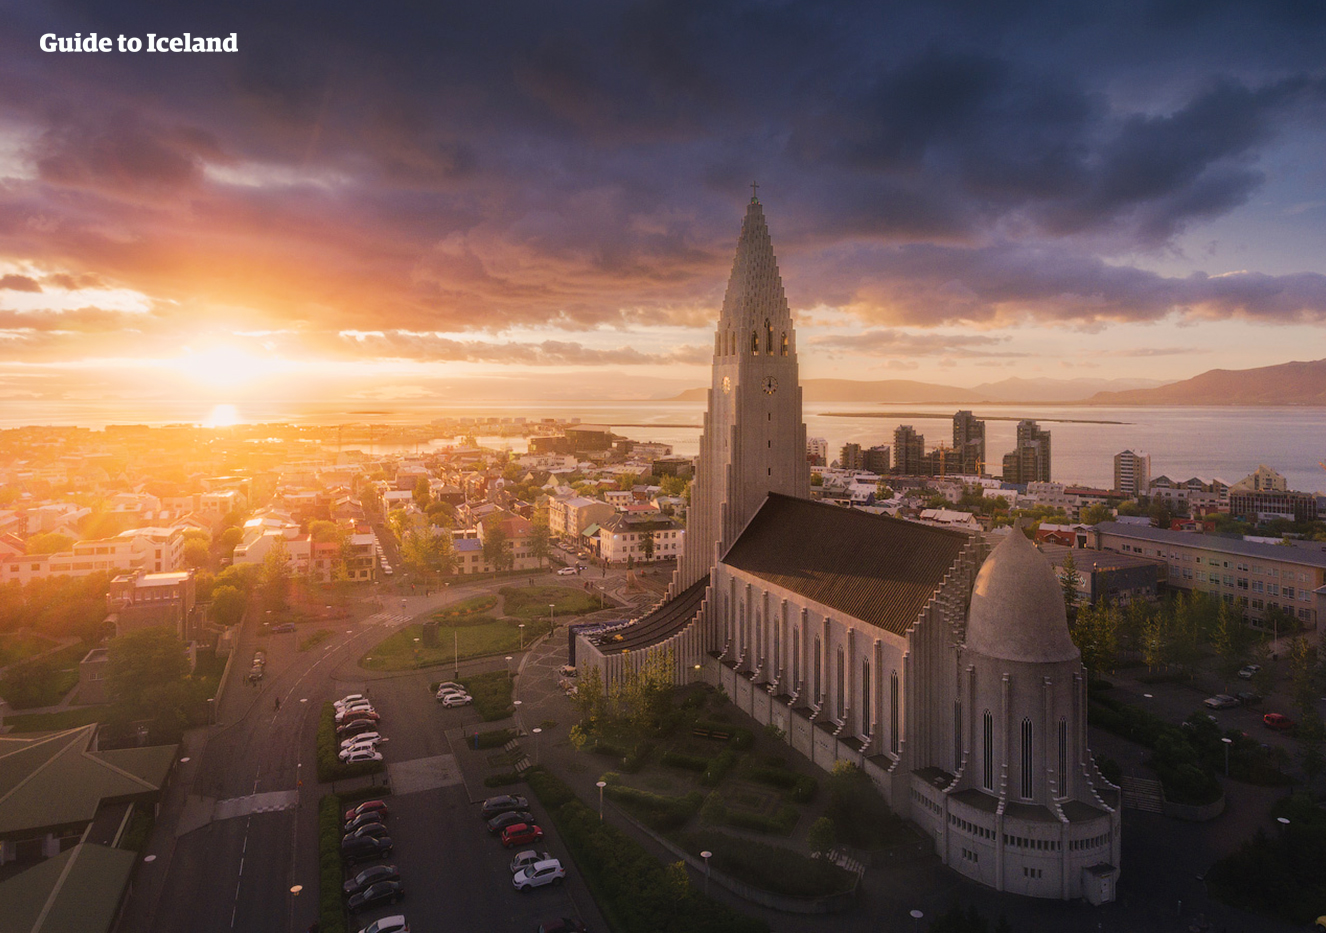 A summer night in Reykjavík city is full of potential wonders and adventures.